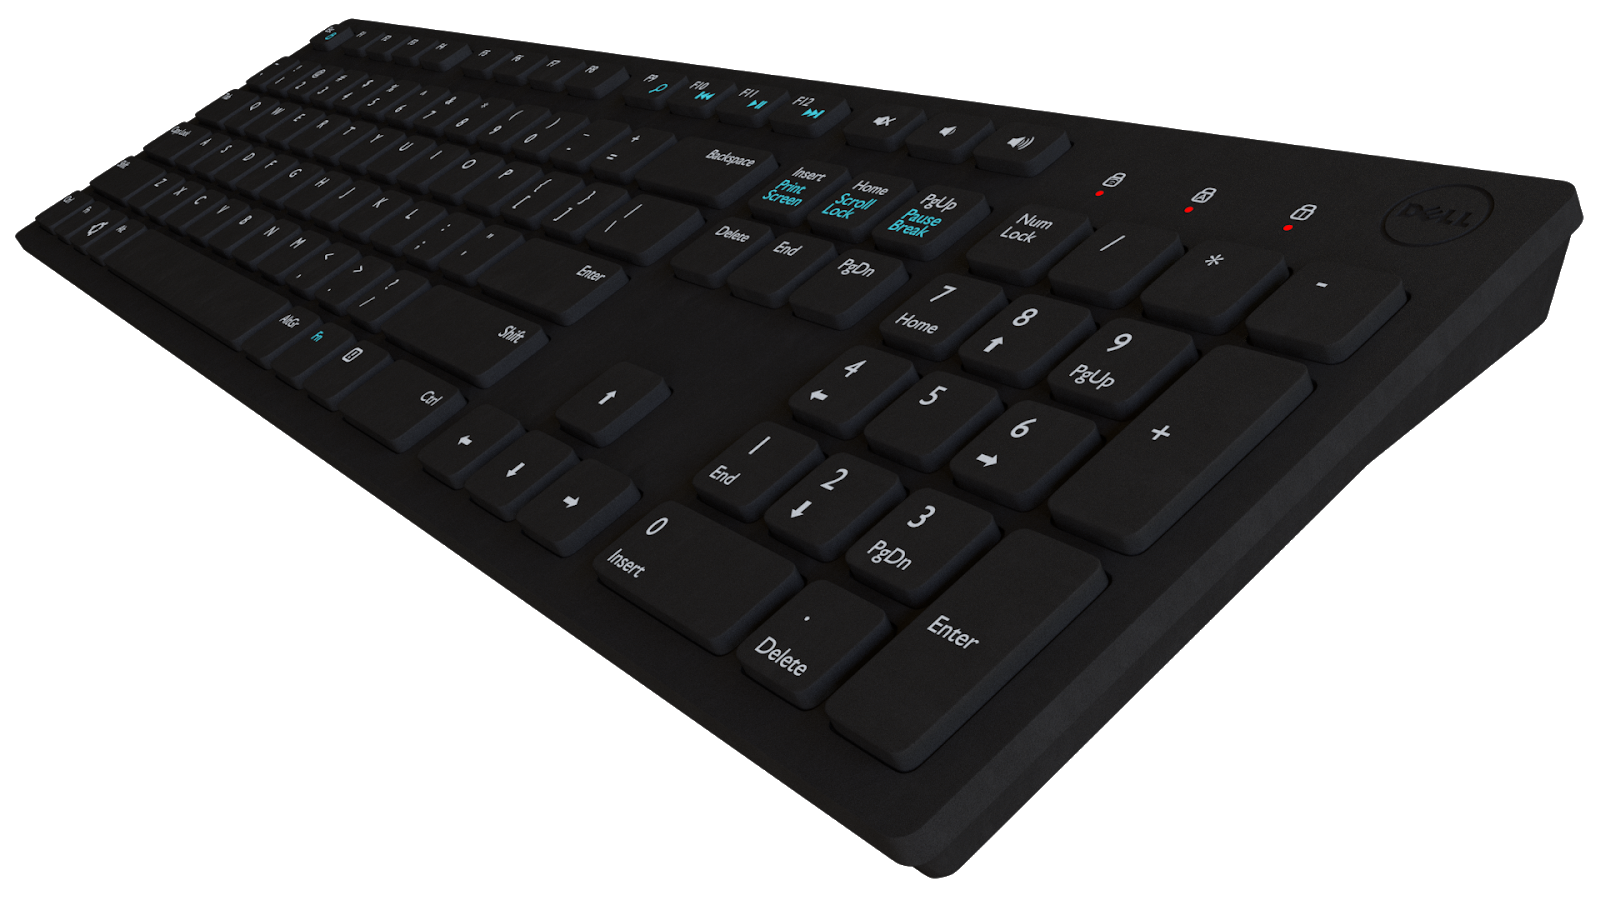 Free 3D Dell KB216 Keyboard CC0 3DS - Free 3D Models Under Public Domain